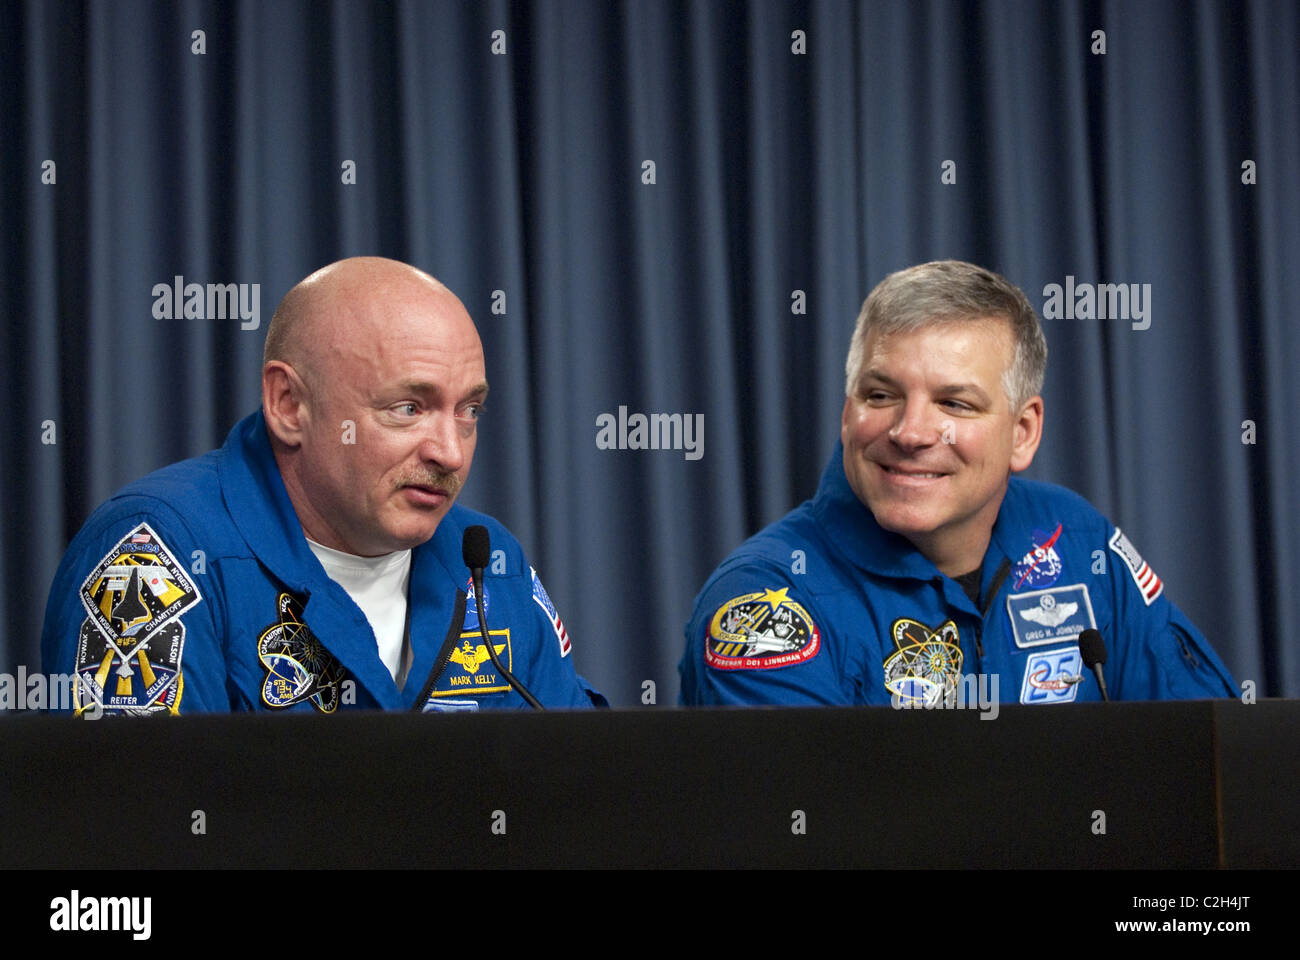 STS-134 Commander Mark Kelly and Pilot Greg H. Johnson - Stock Image